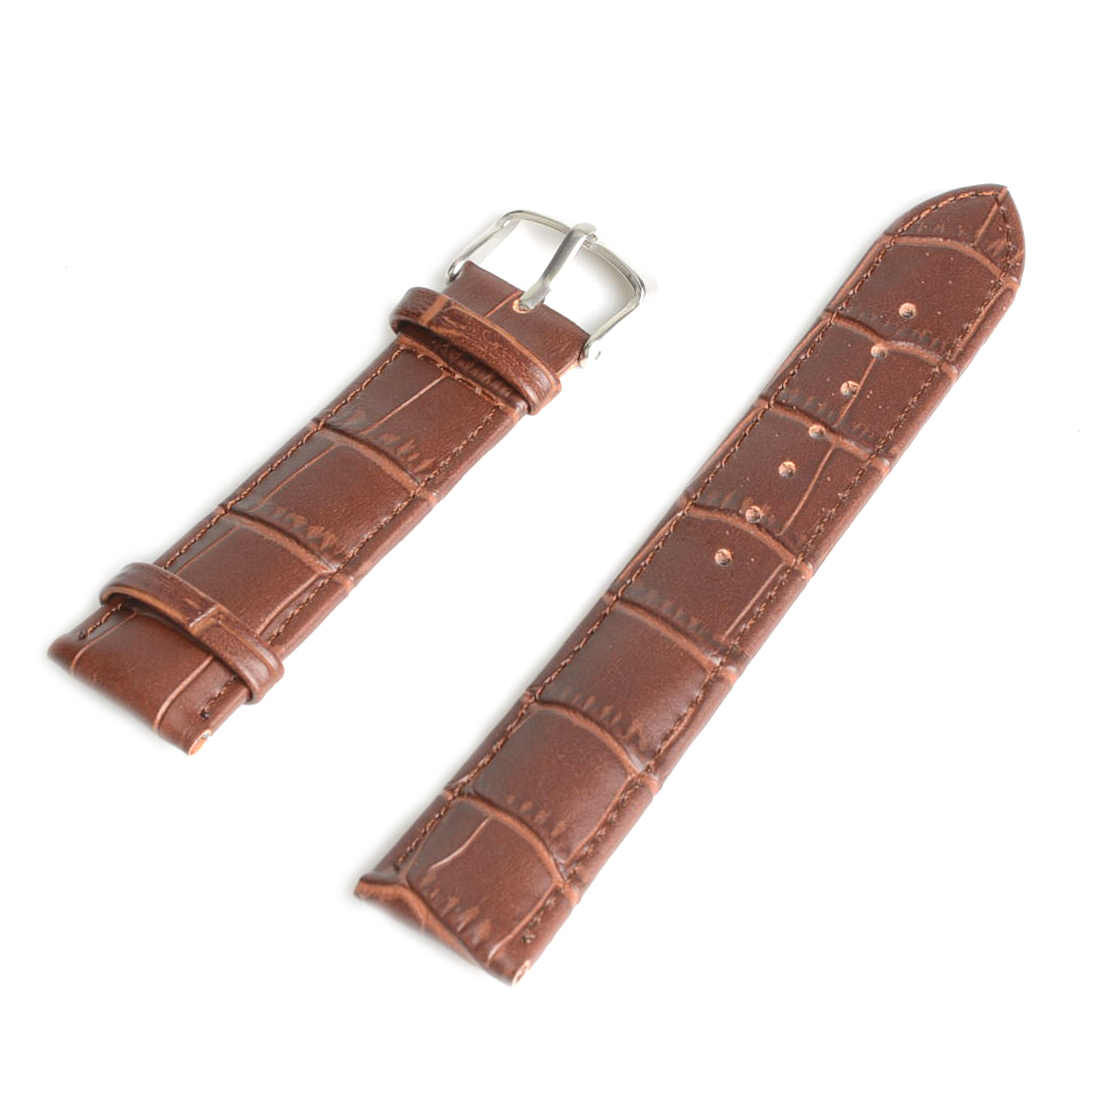 22mm Durable Brown Genuine Leather Watch Band Strap Alloy Buckle Watchband SB0521